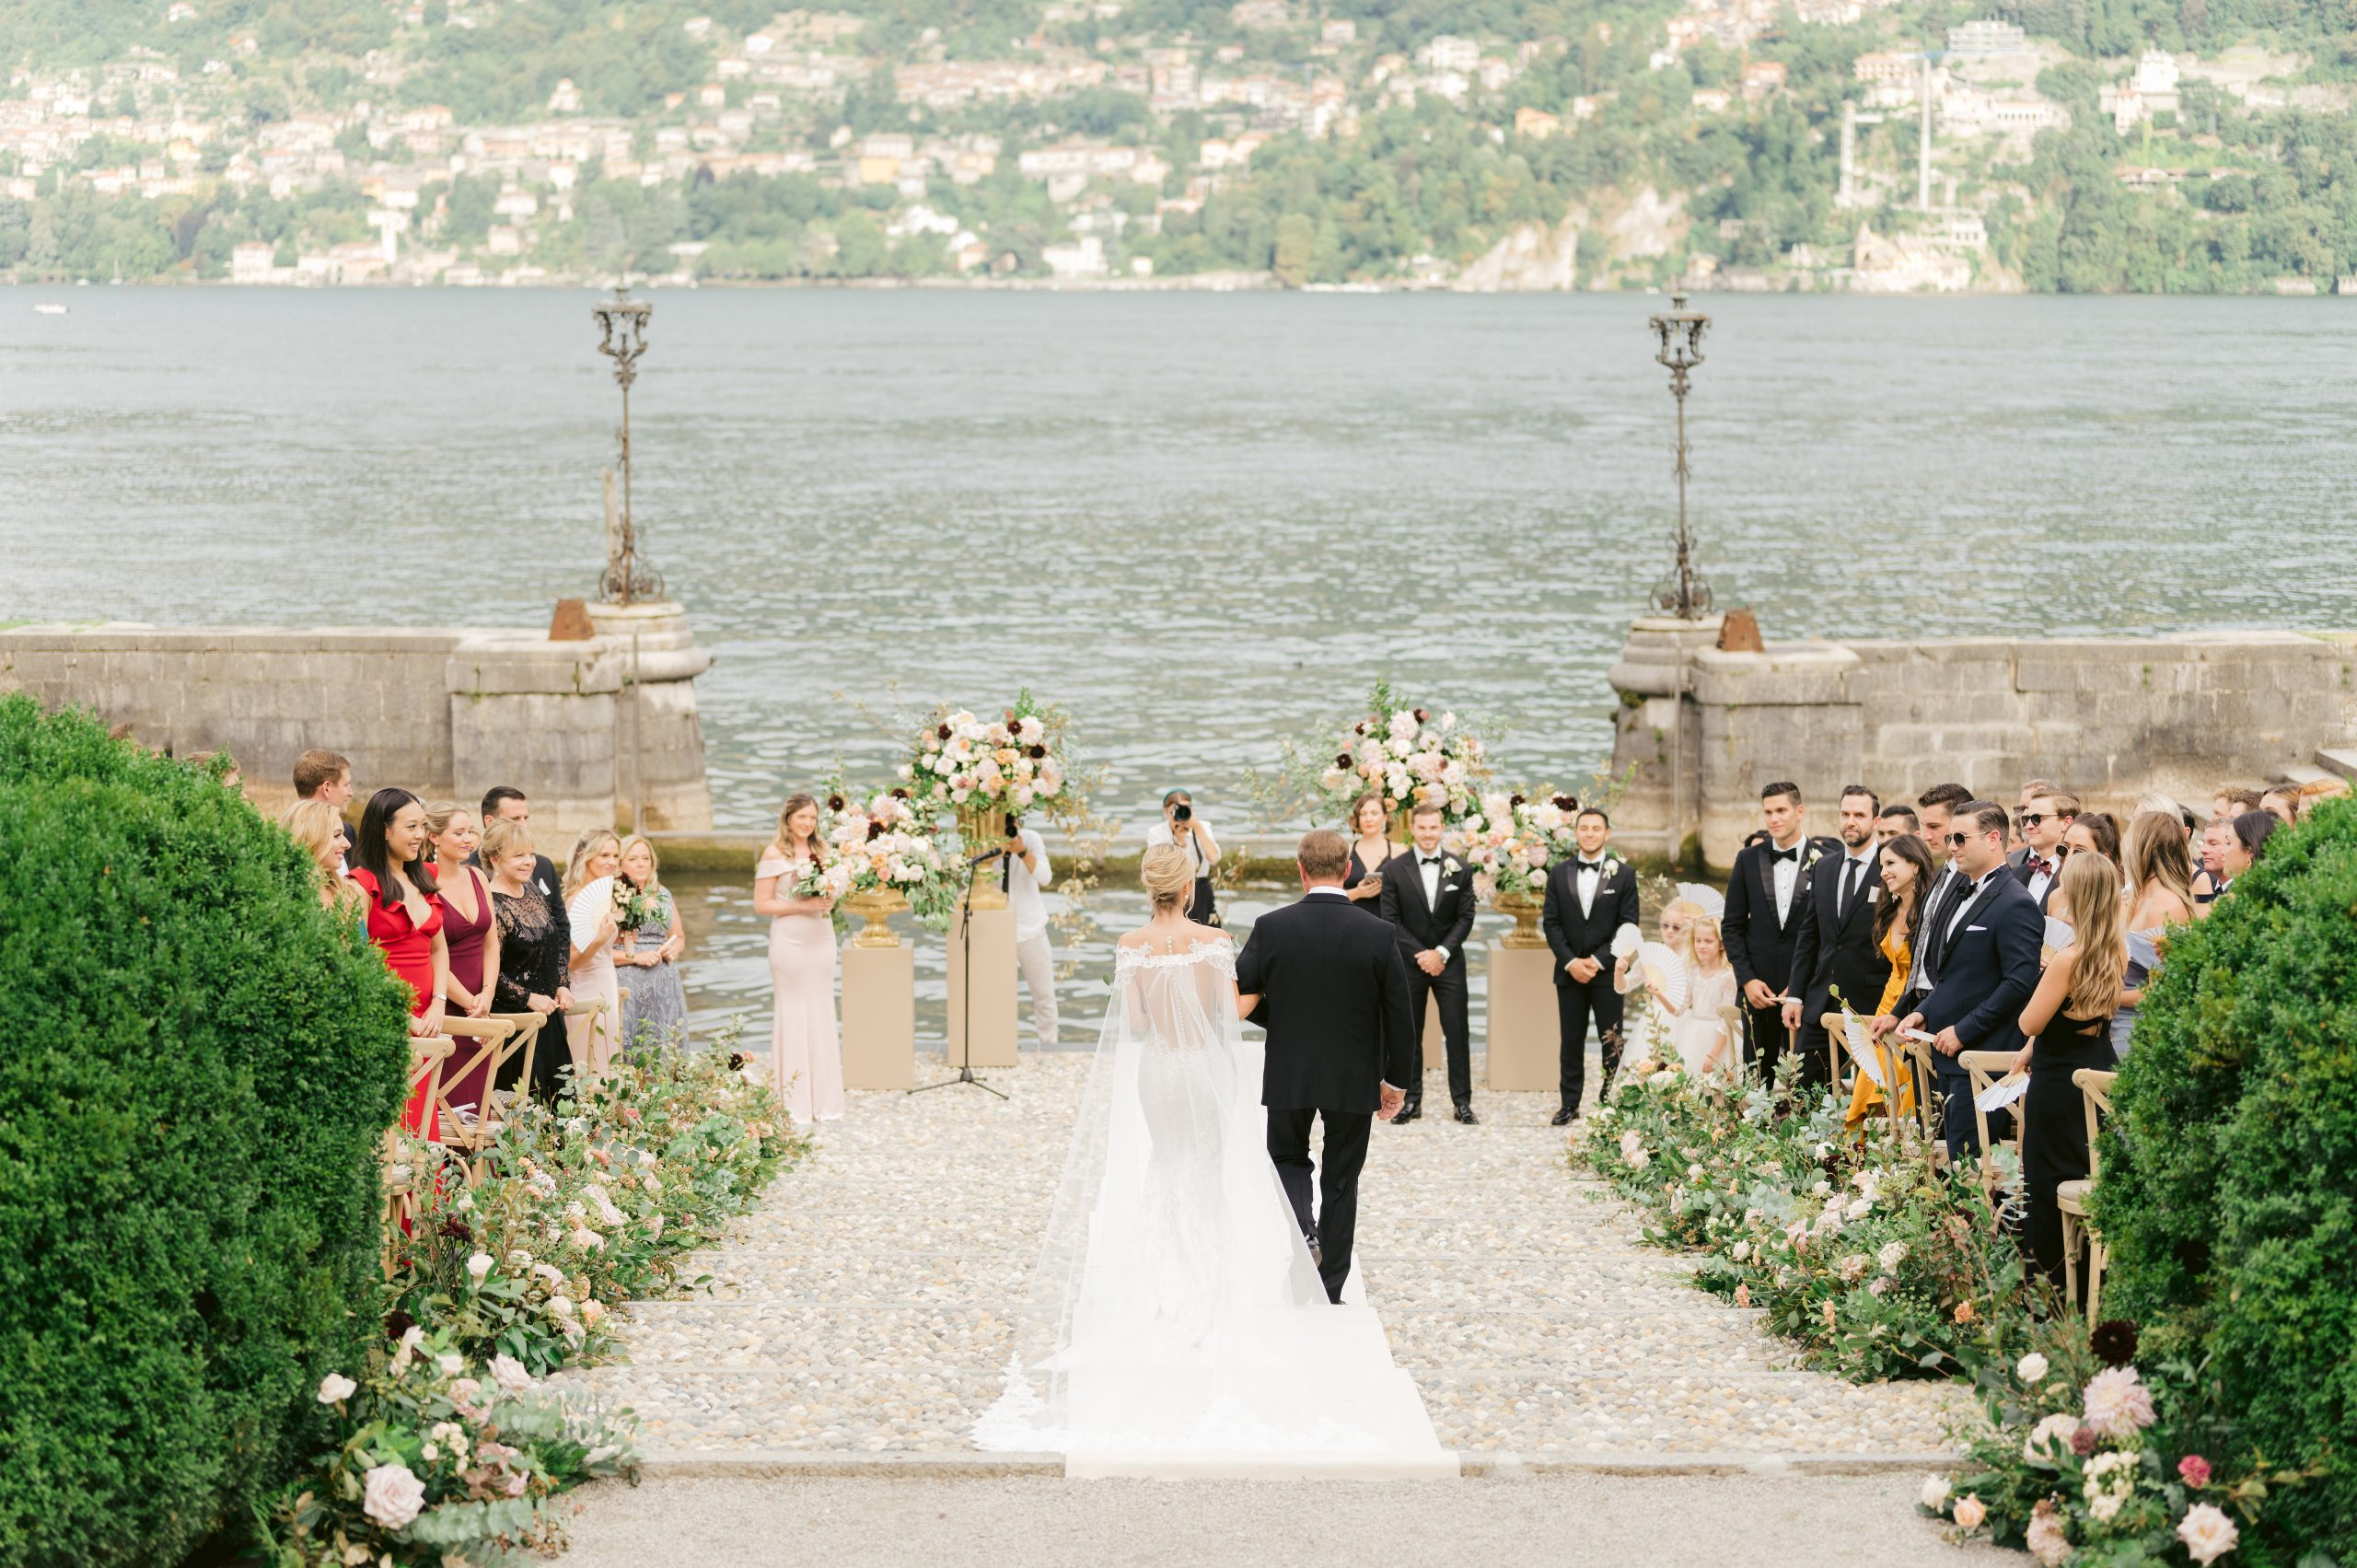 Bride-and-Dad-walking-to-the-ceremony-at-Villa-Erba-bby-My-Lake-Como-Wedding-scaled